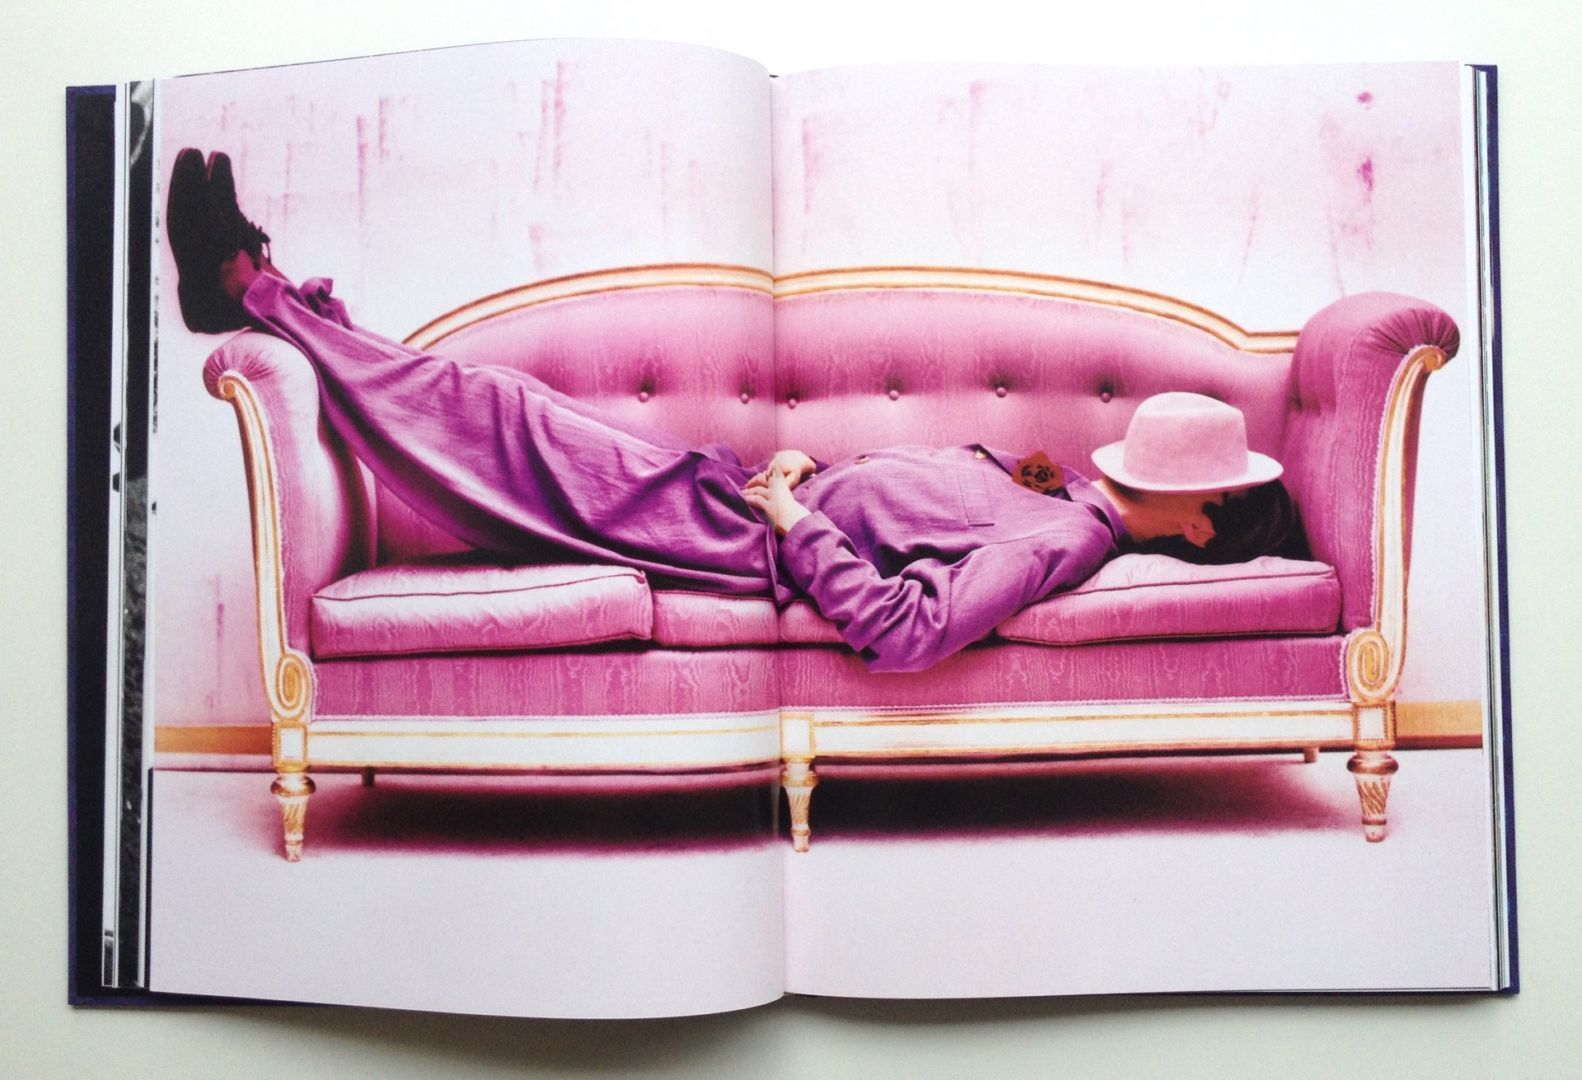 Nick Knight – Nicknight